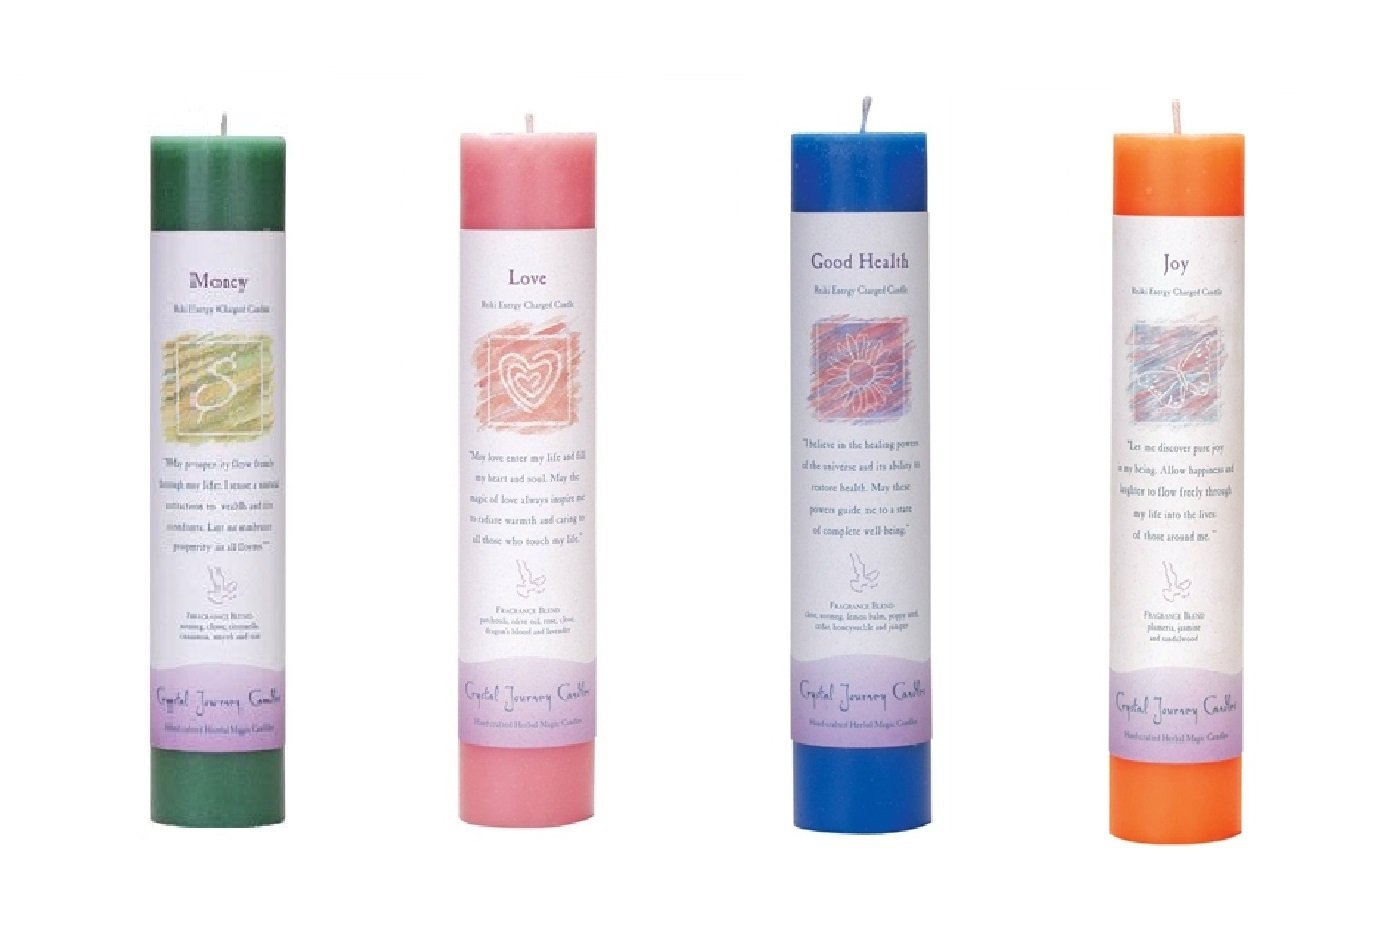 Crystal Journey Reiki Charged Herbal Magic Pillar Candle with Inspirational Labels - Bundle of 4 (Money, Love, Good Health, Joy) Each 7